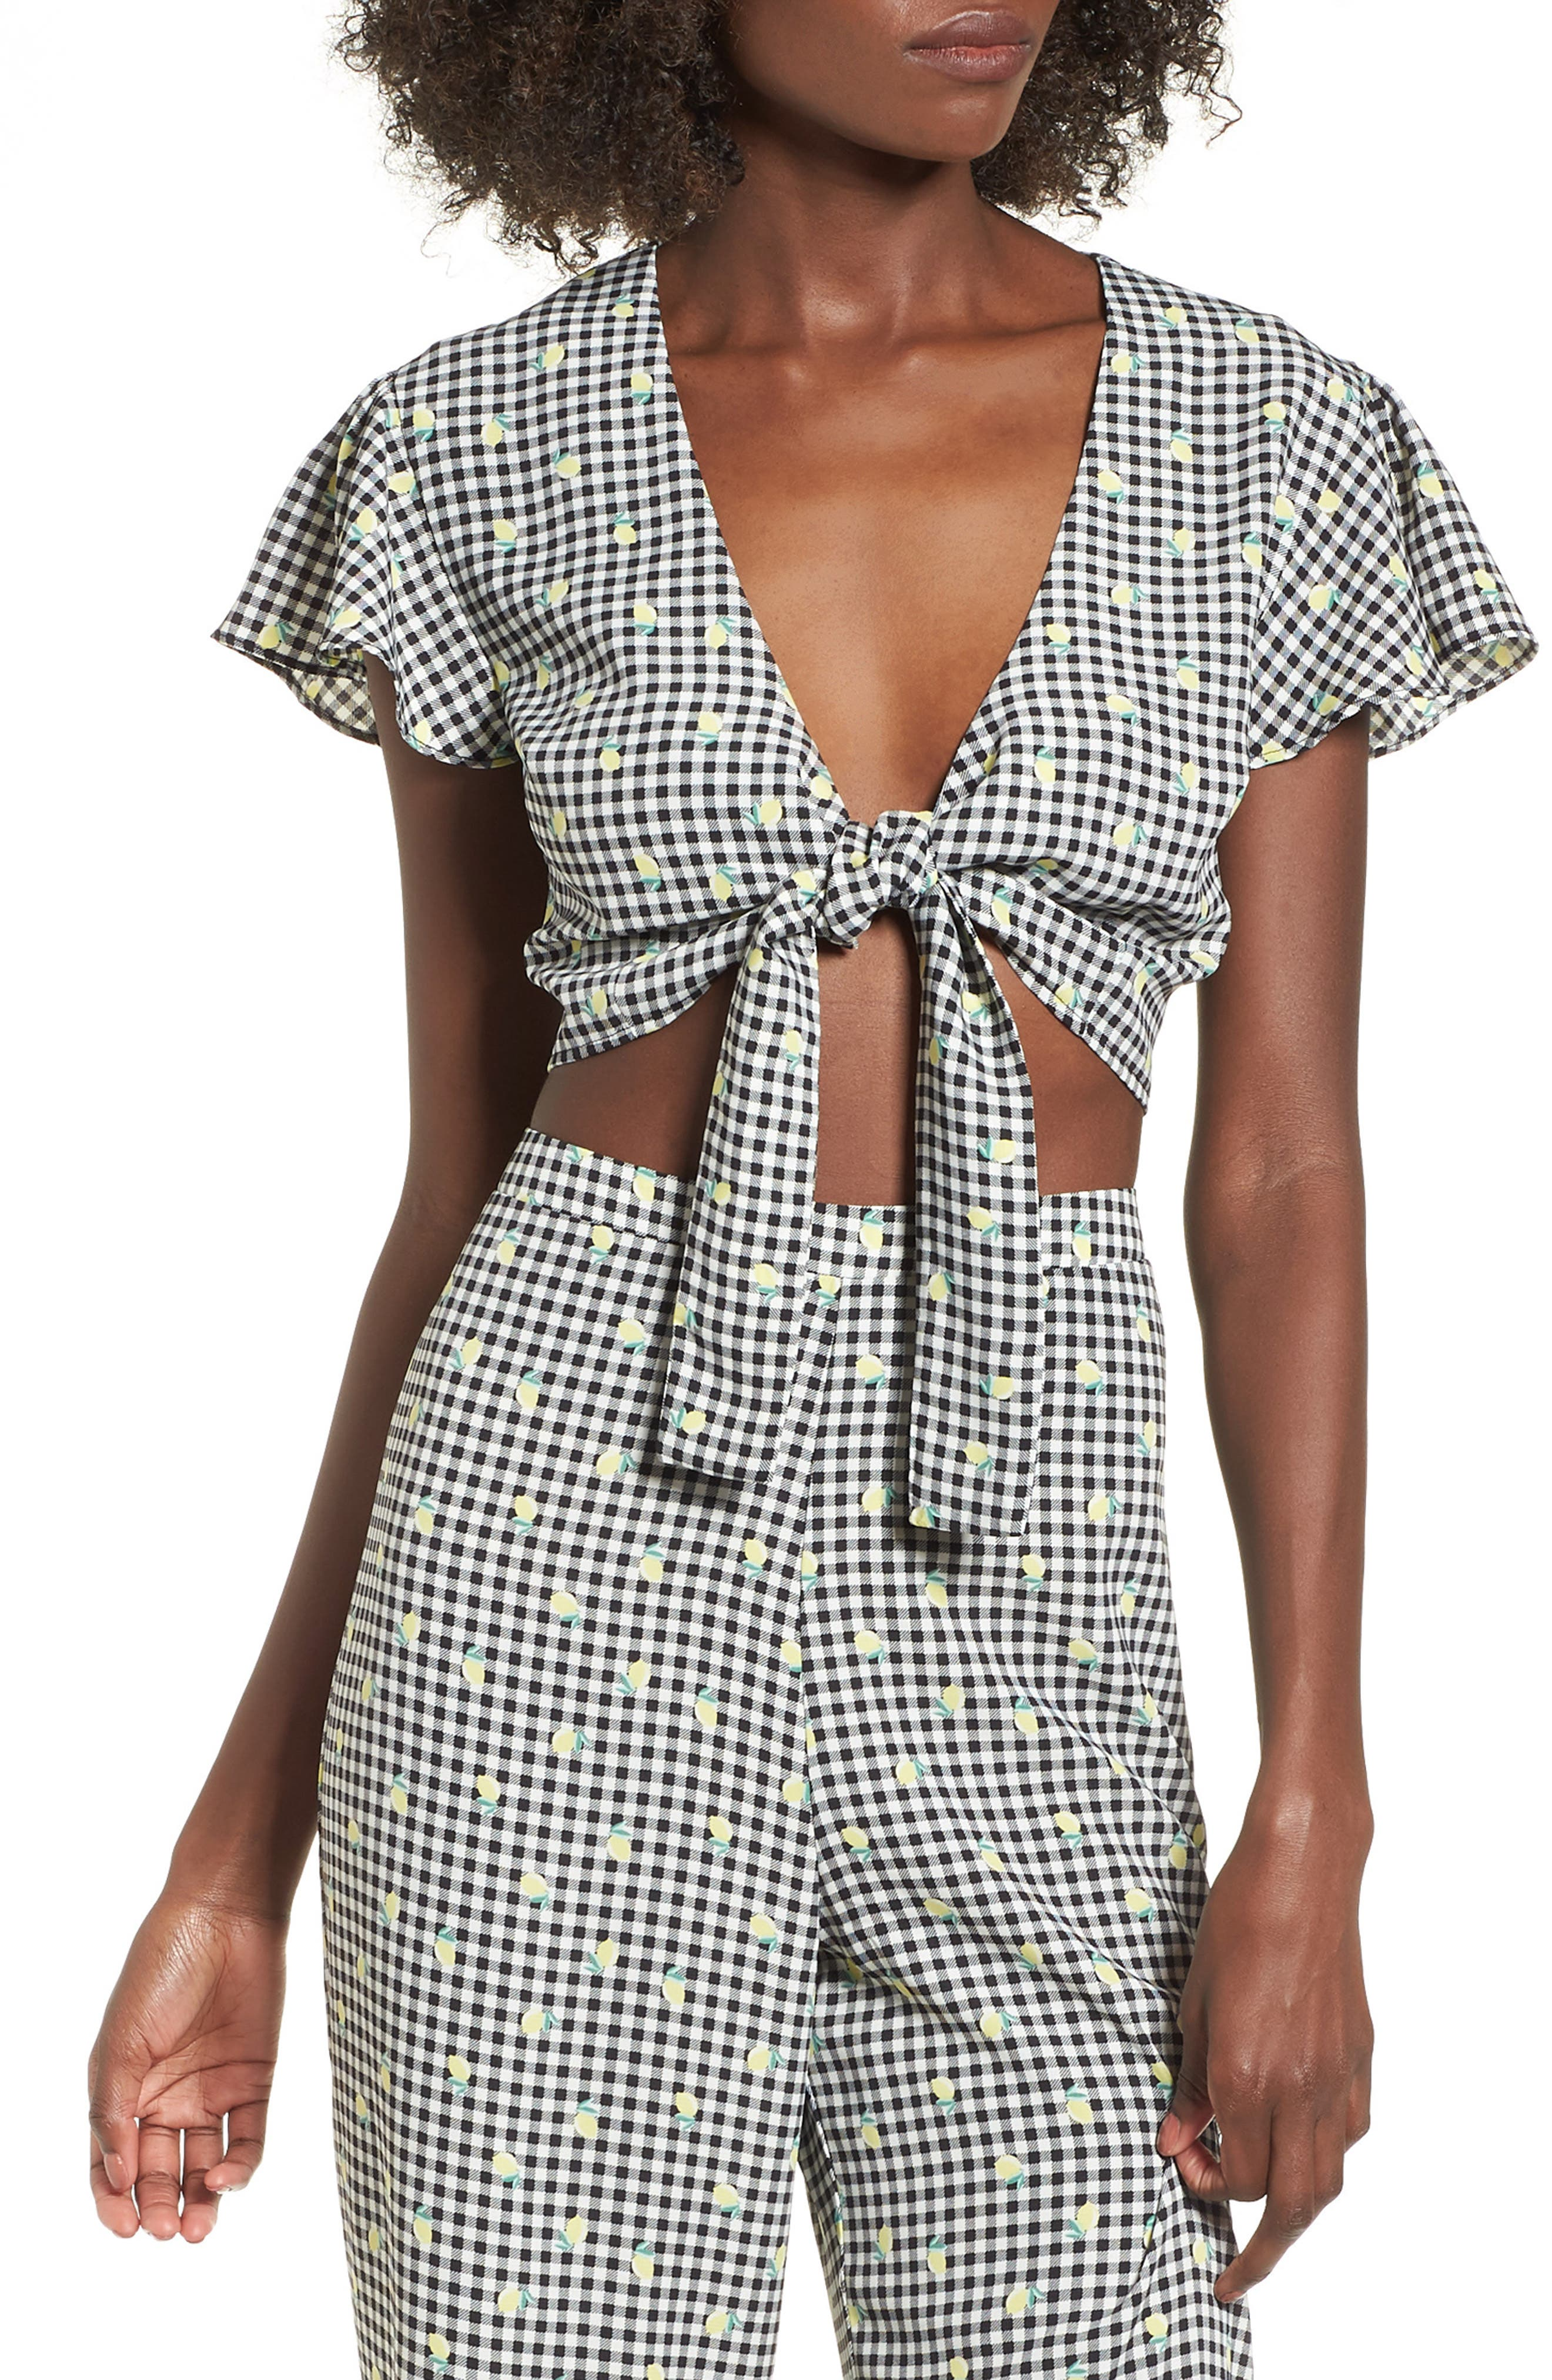 Gingham Tie Front Crop Top,                             Main thumbnail 1, color,                             Gingham Lemon Print